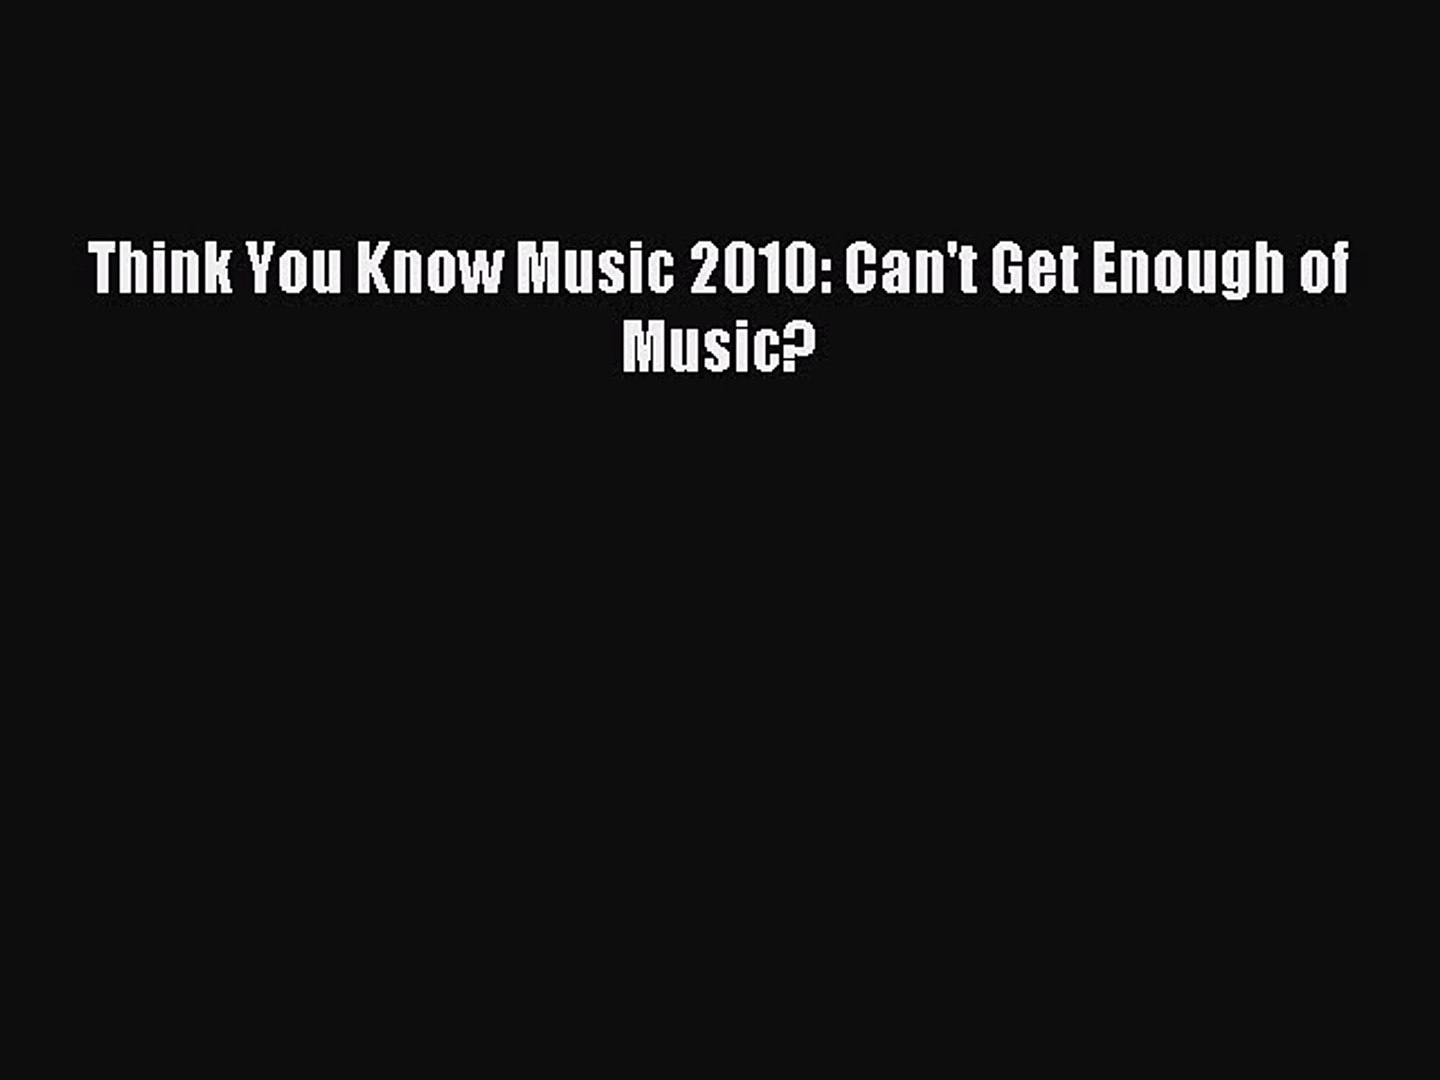 PDF Download - Think You Know Music 2010: Can't Get Enough of Music? Download Full Ebook